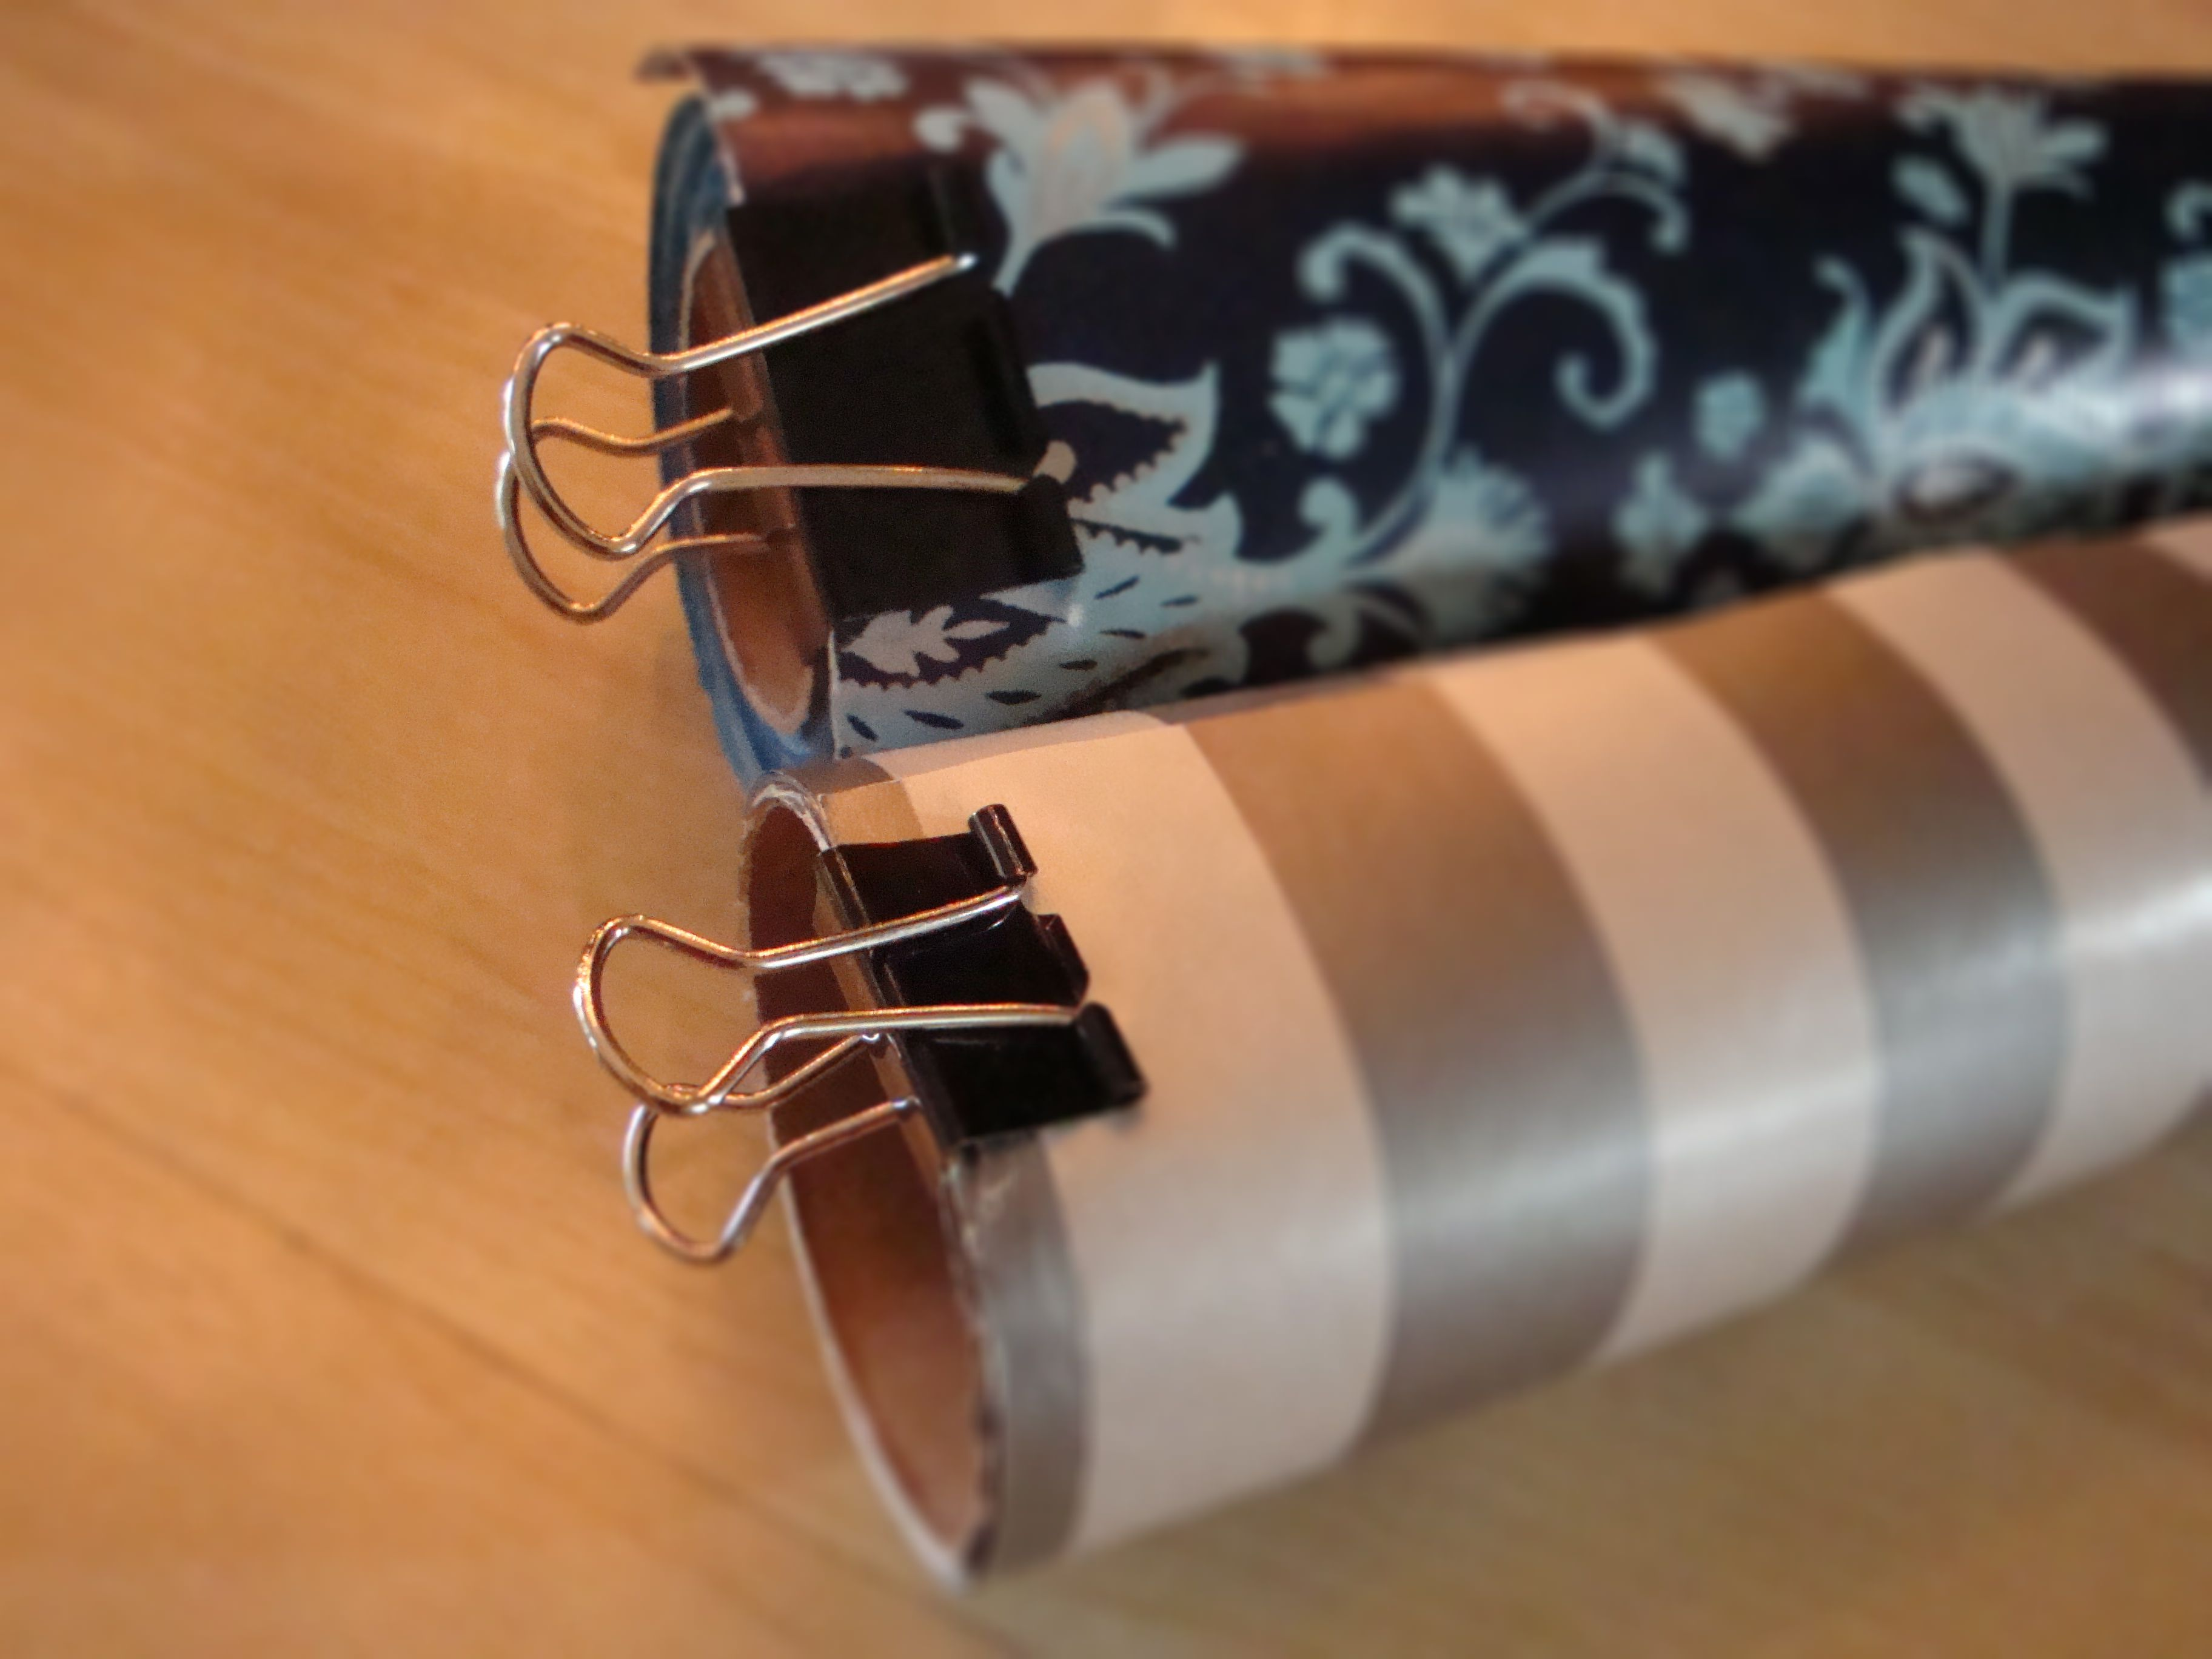 New Uses For Binder Clips Home Organizing Hacks